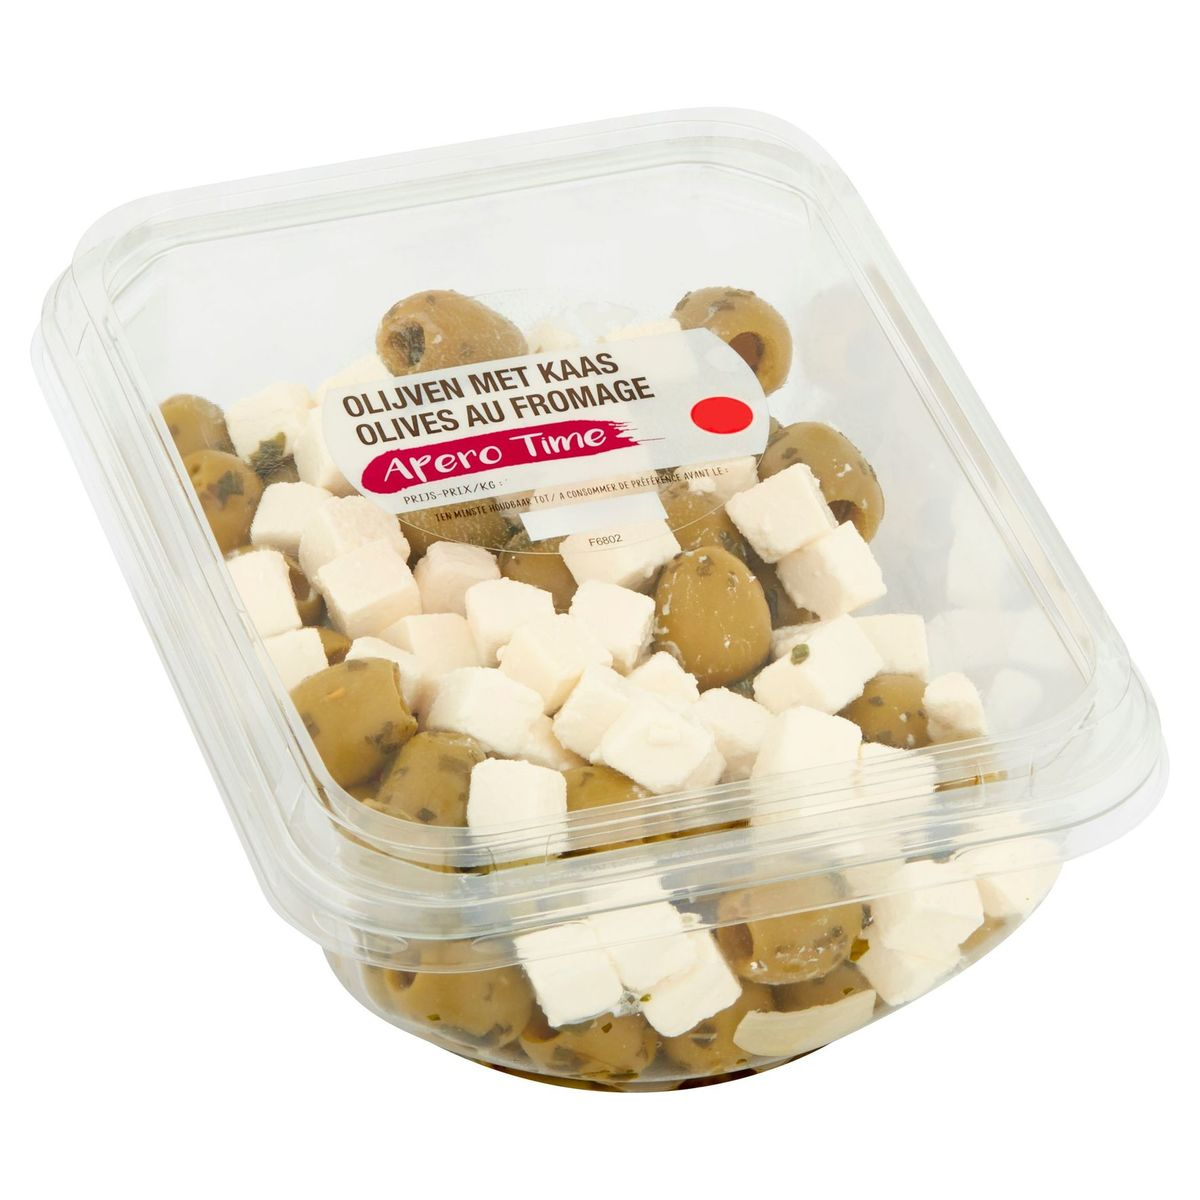 Carrefour Apero Time Olives au Fromage 400 g